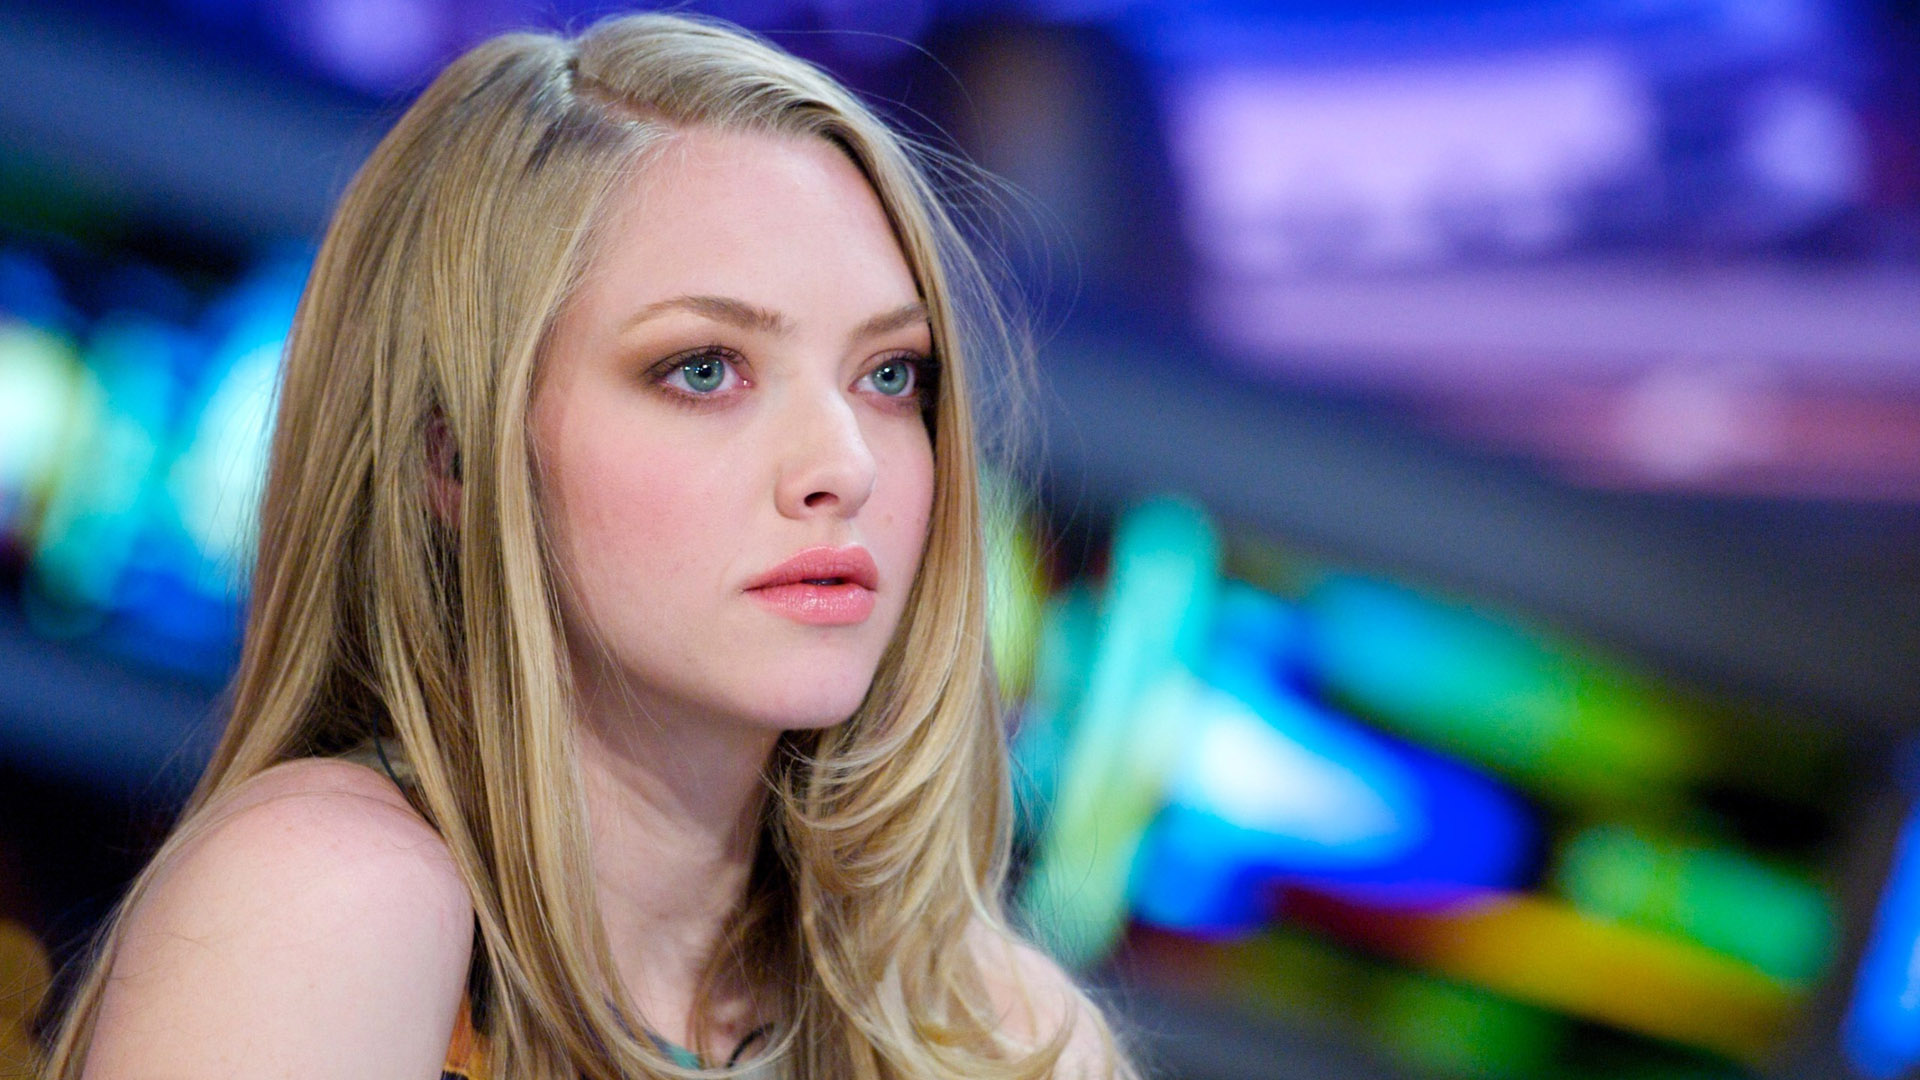 Beautiful Amanda Seyfried Amazing Download Look Mobile Hd Free Pictures